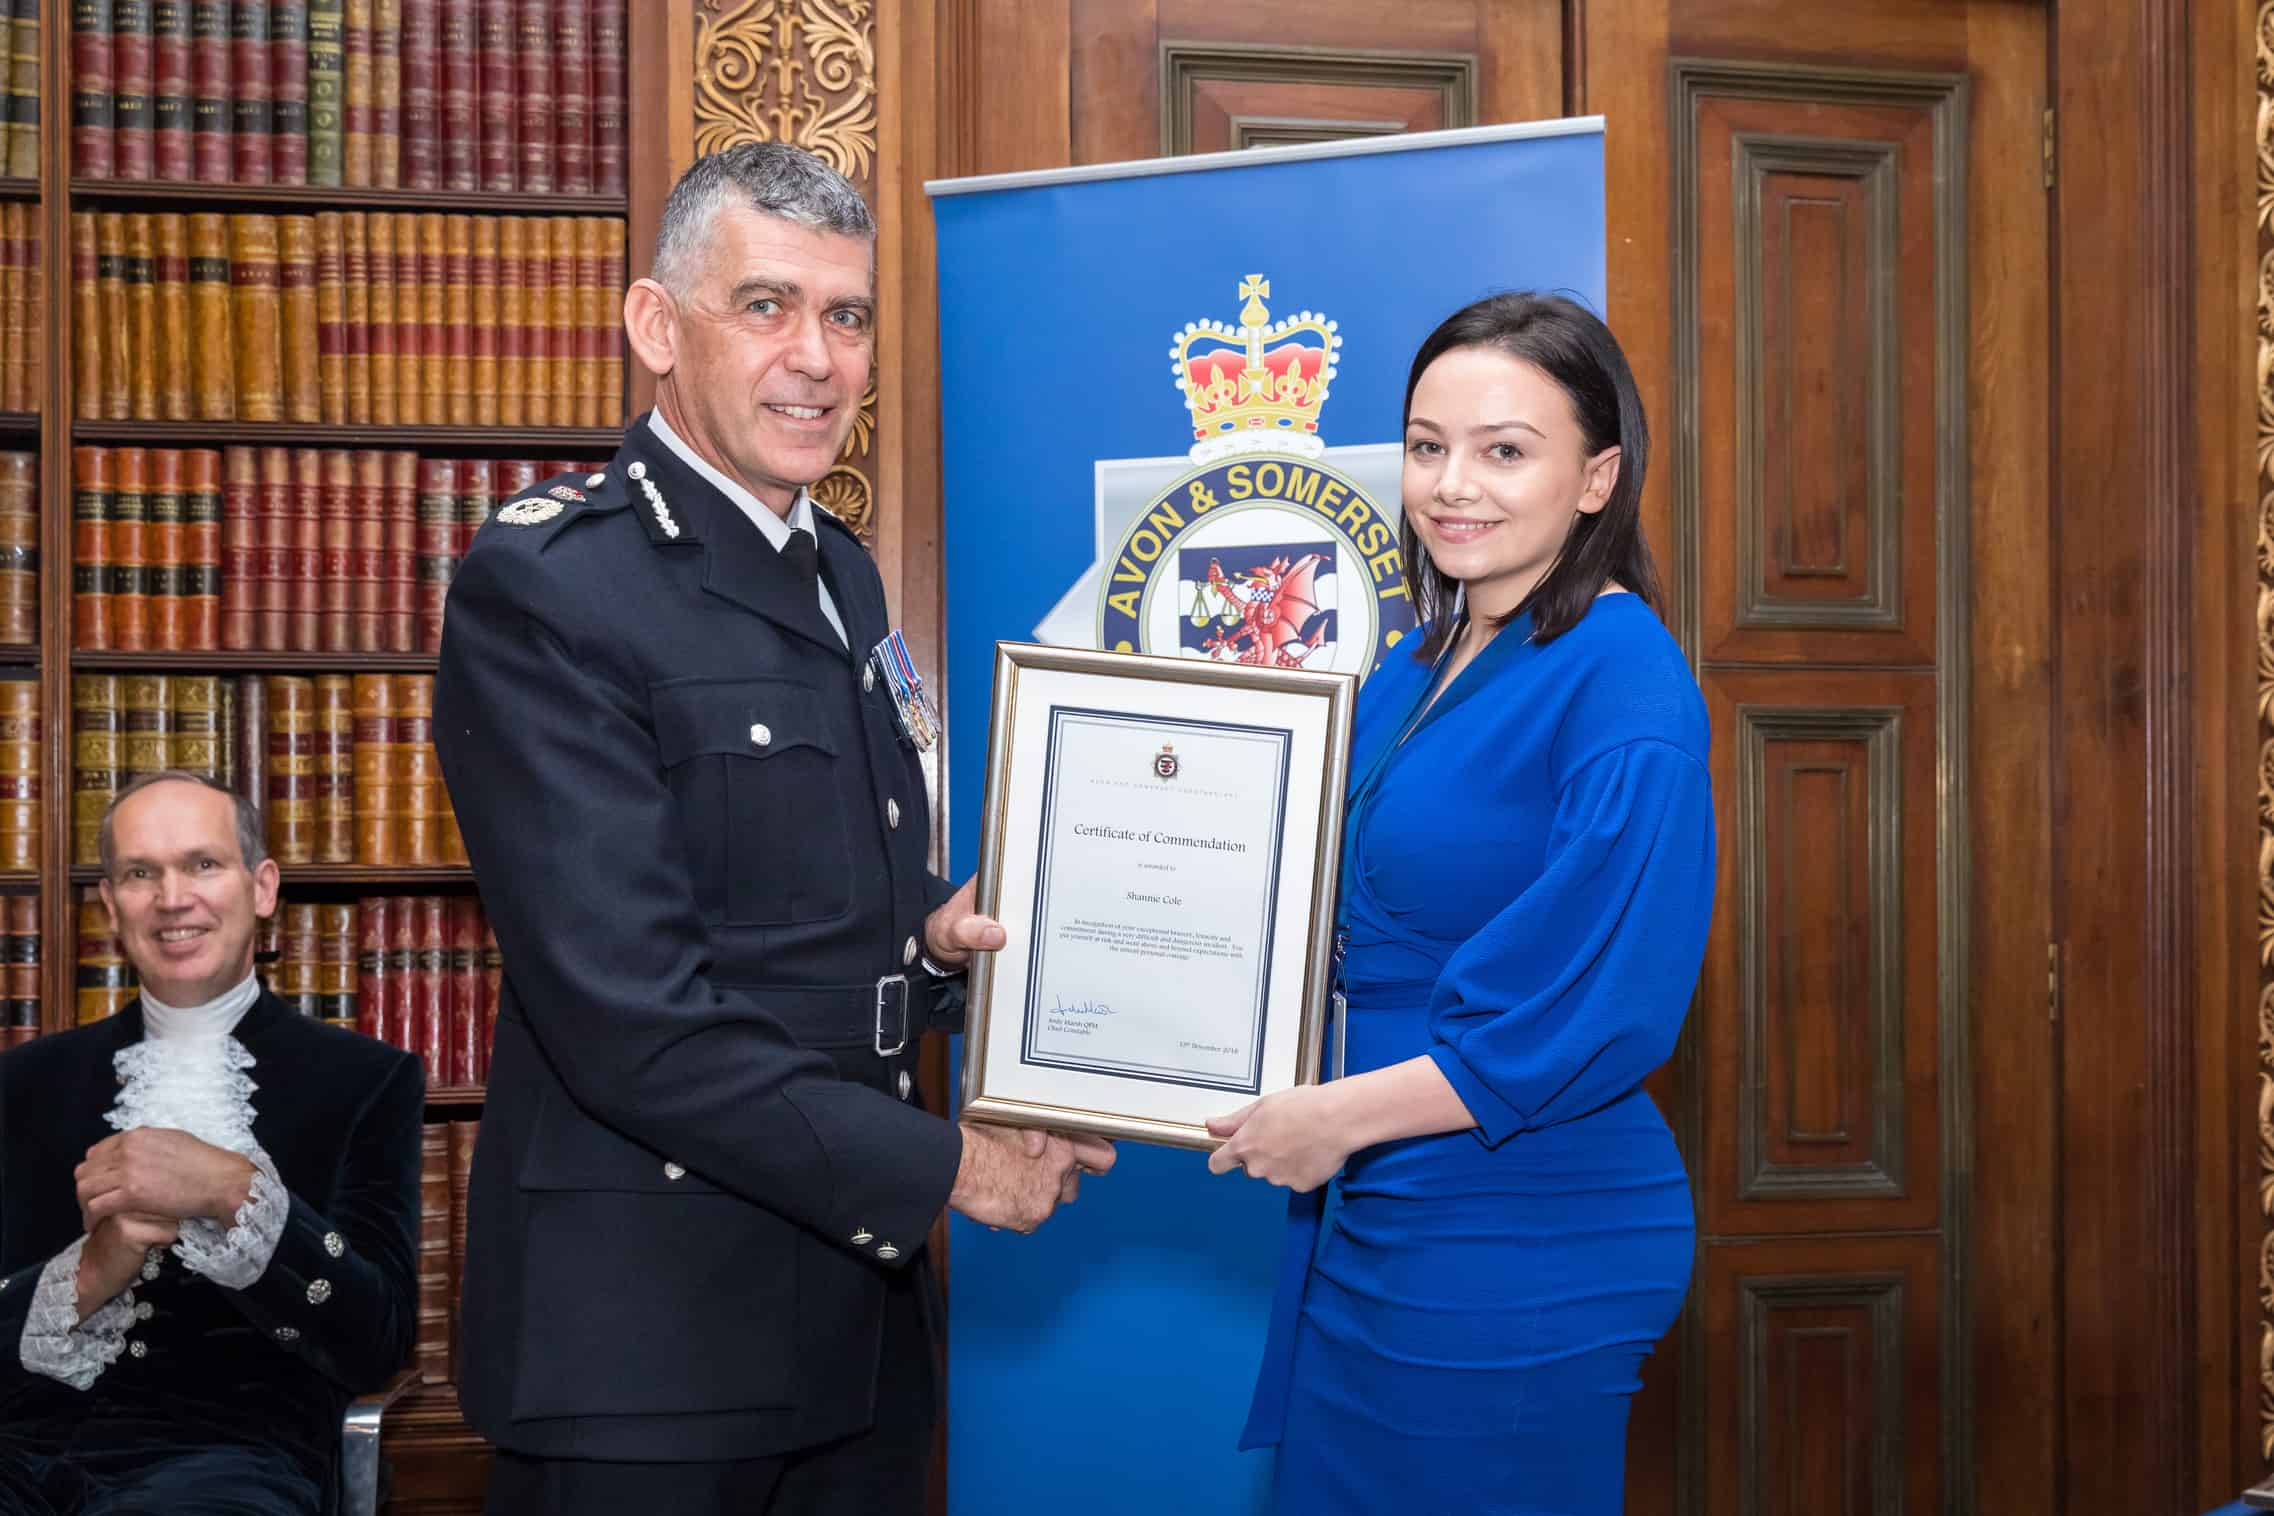 Exceptional work and deeds commended at Chief Constable's Awards